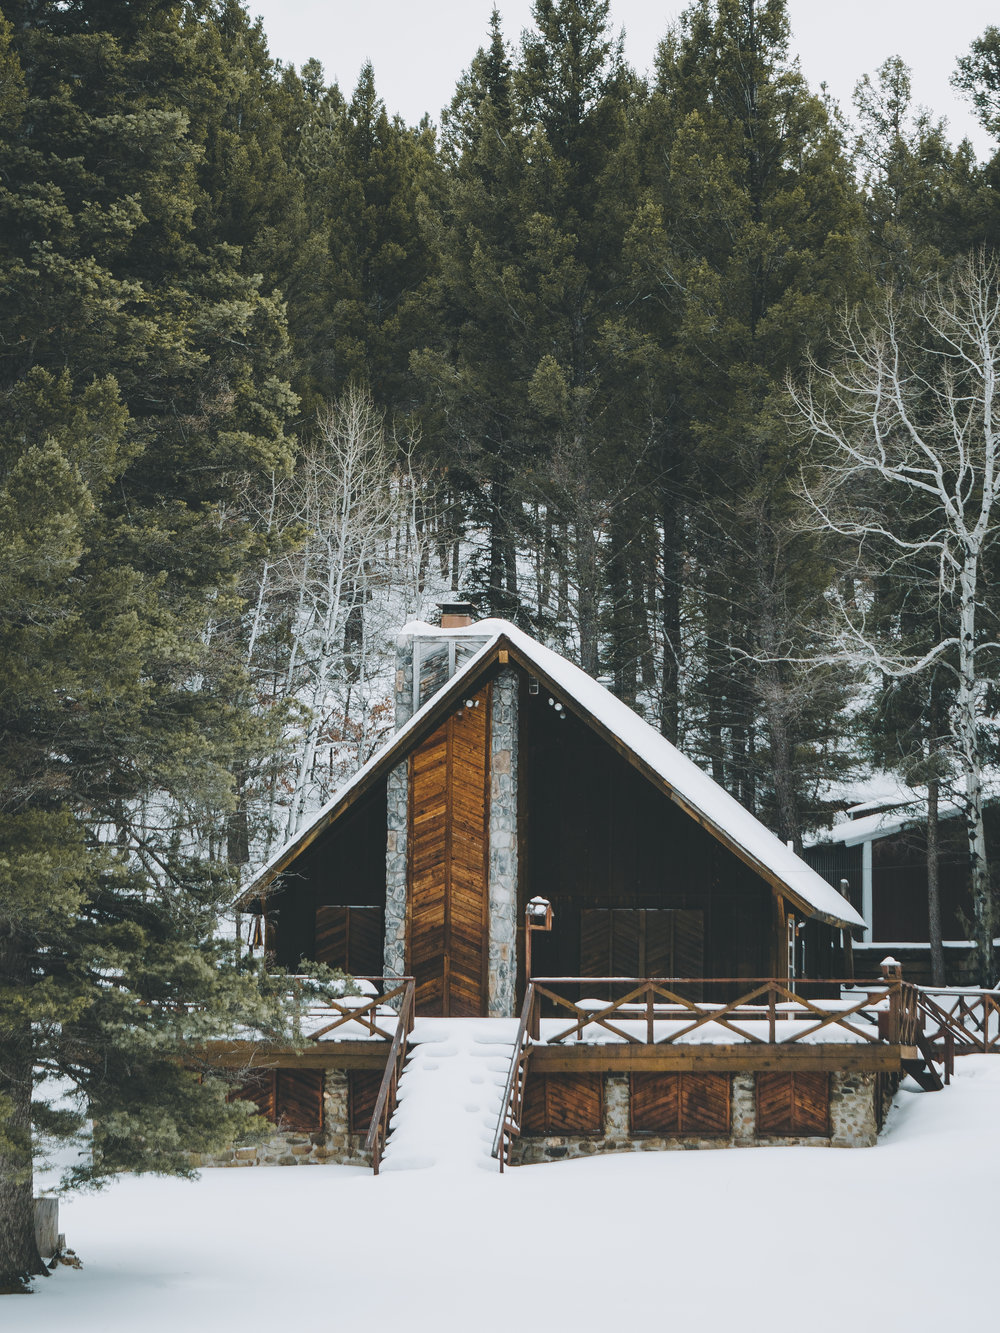 Snowy Cabin, Carson National Forest, New Mexico